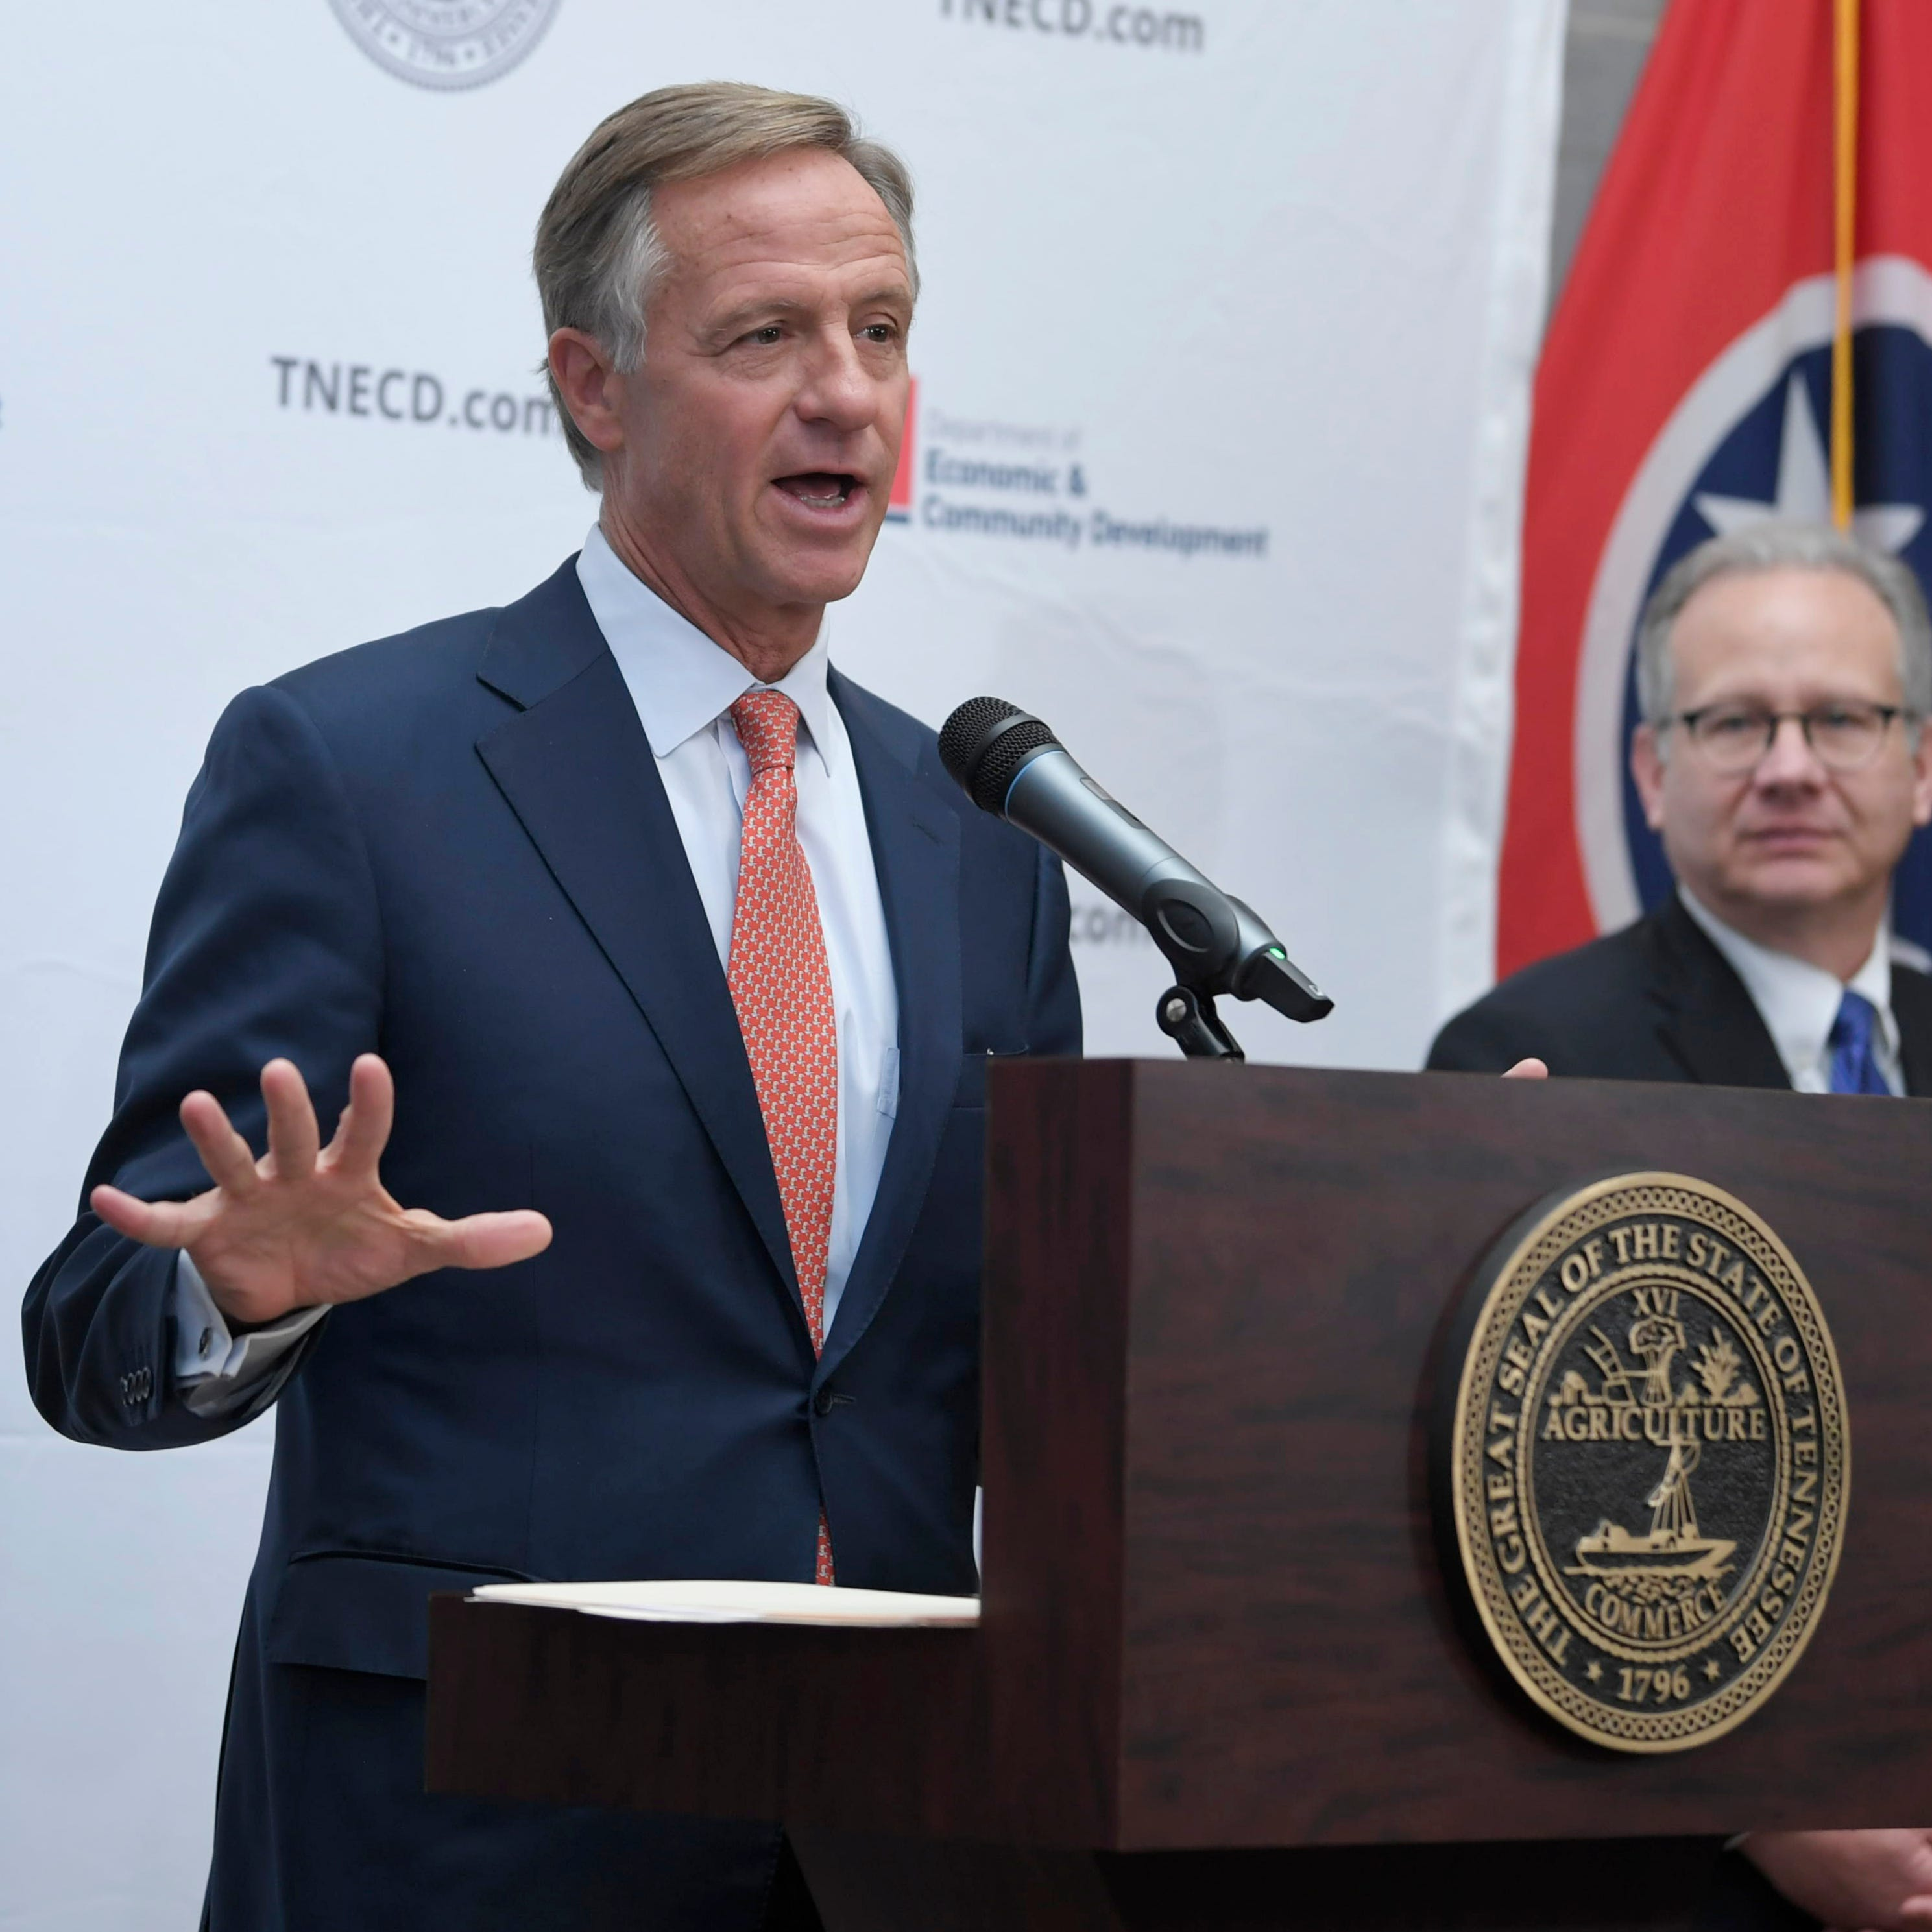 Here's what incentives Tennessee, Nashville have promised Amazon in exchange for 5,000 new jobs